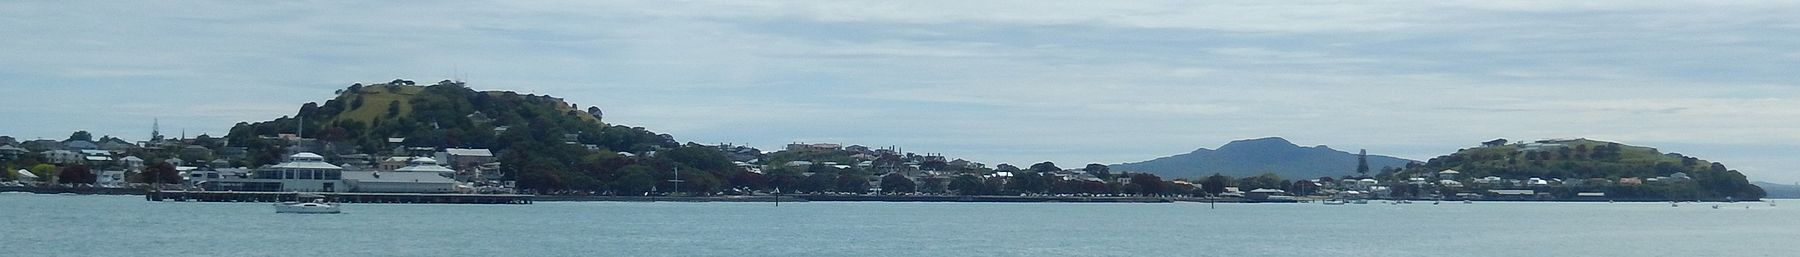 Devonport seen from a passing ferry